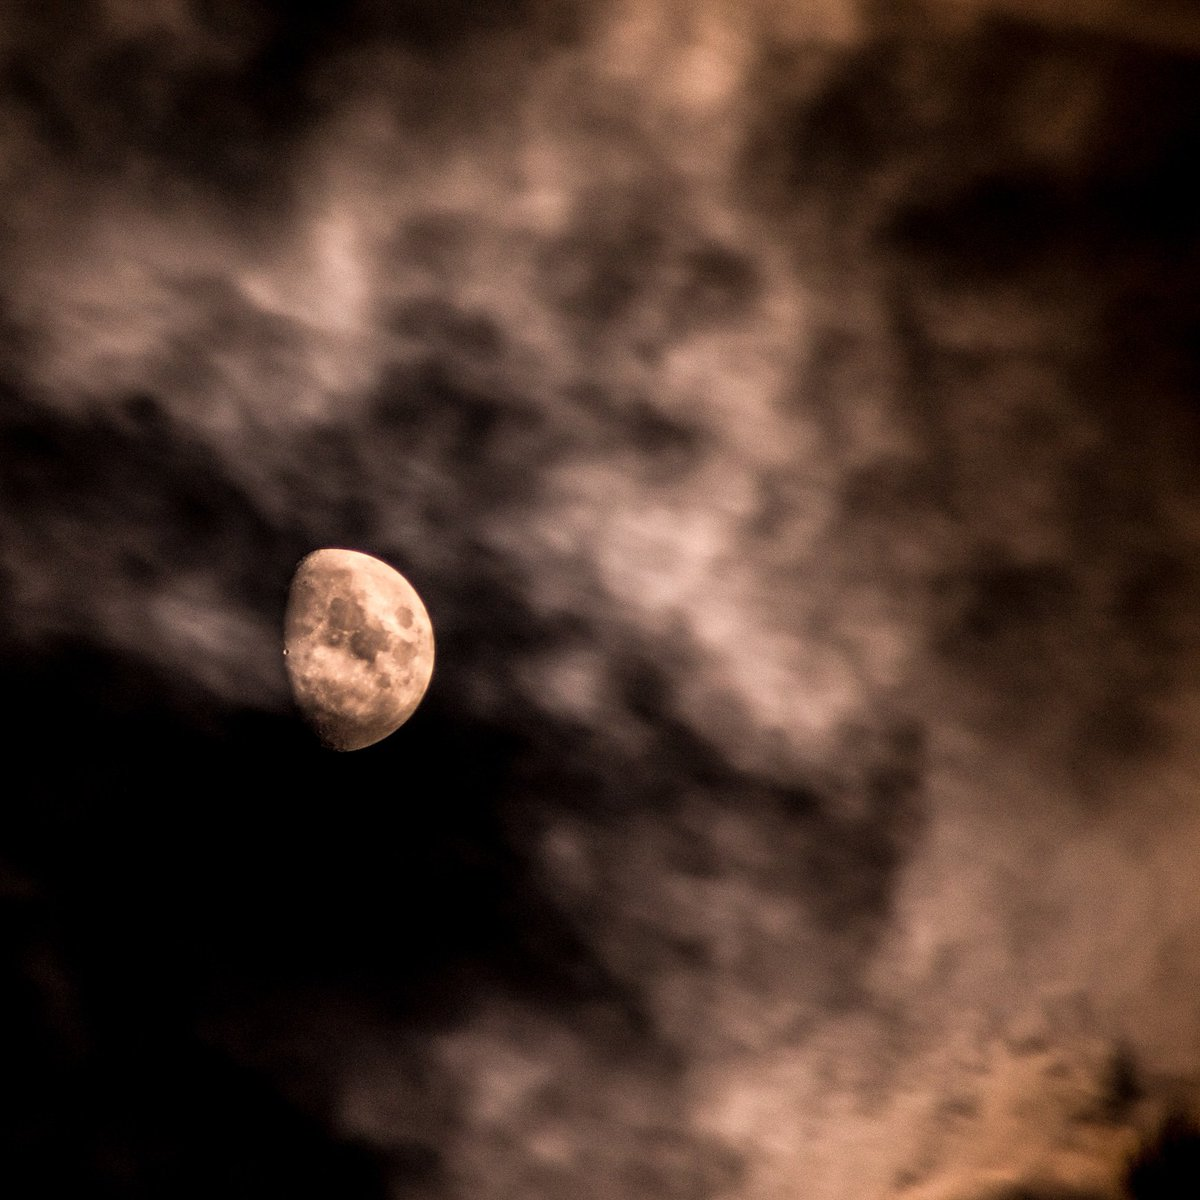 A face in the clouds, can you see it? #moonphotography #moonphases #waxinggibbousmoon #canont7i #octobermoons #autumnmoons #octobernights #autumnnights #autumnsky #naturewalks #luna #moonshot #weather #clouds #skywatcher #kyweather #kysky https://t.co/Ea8Nk710JJ